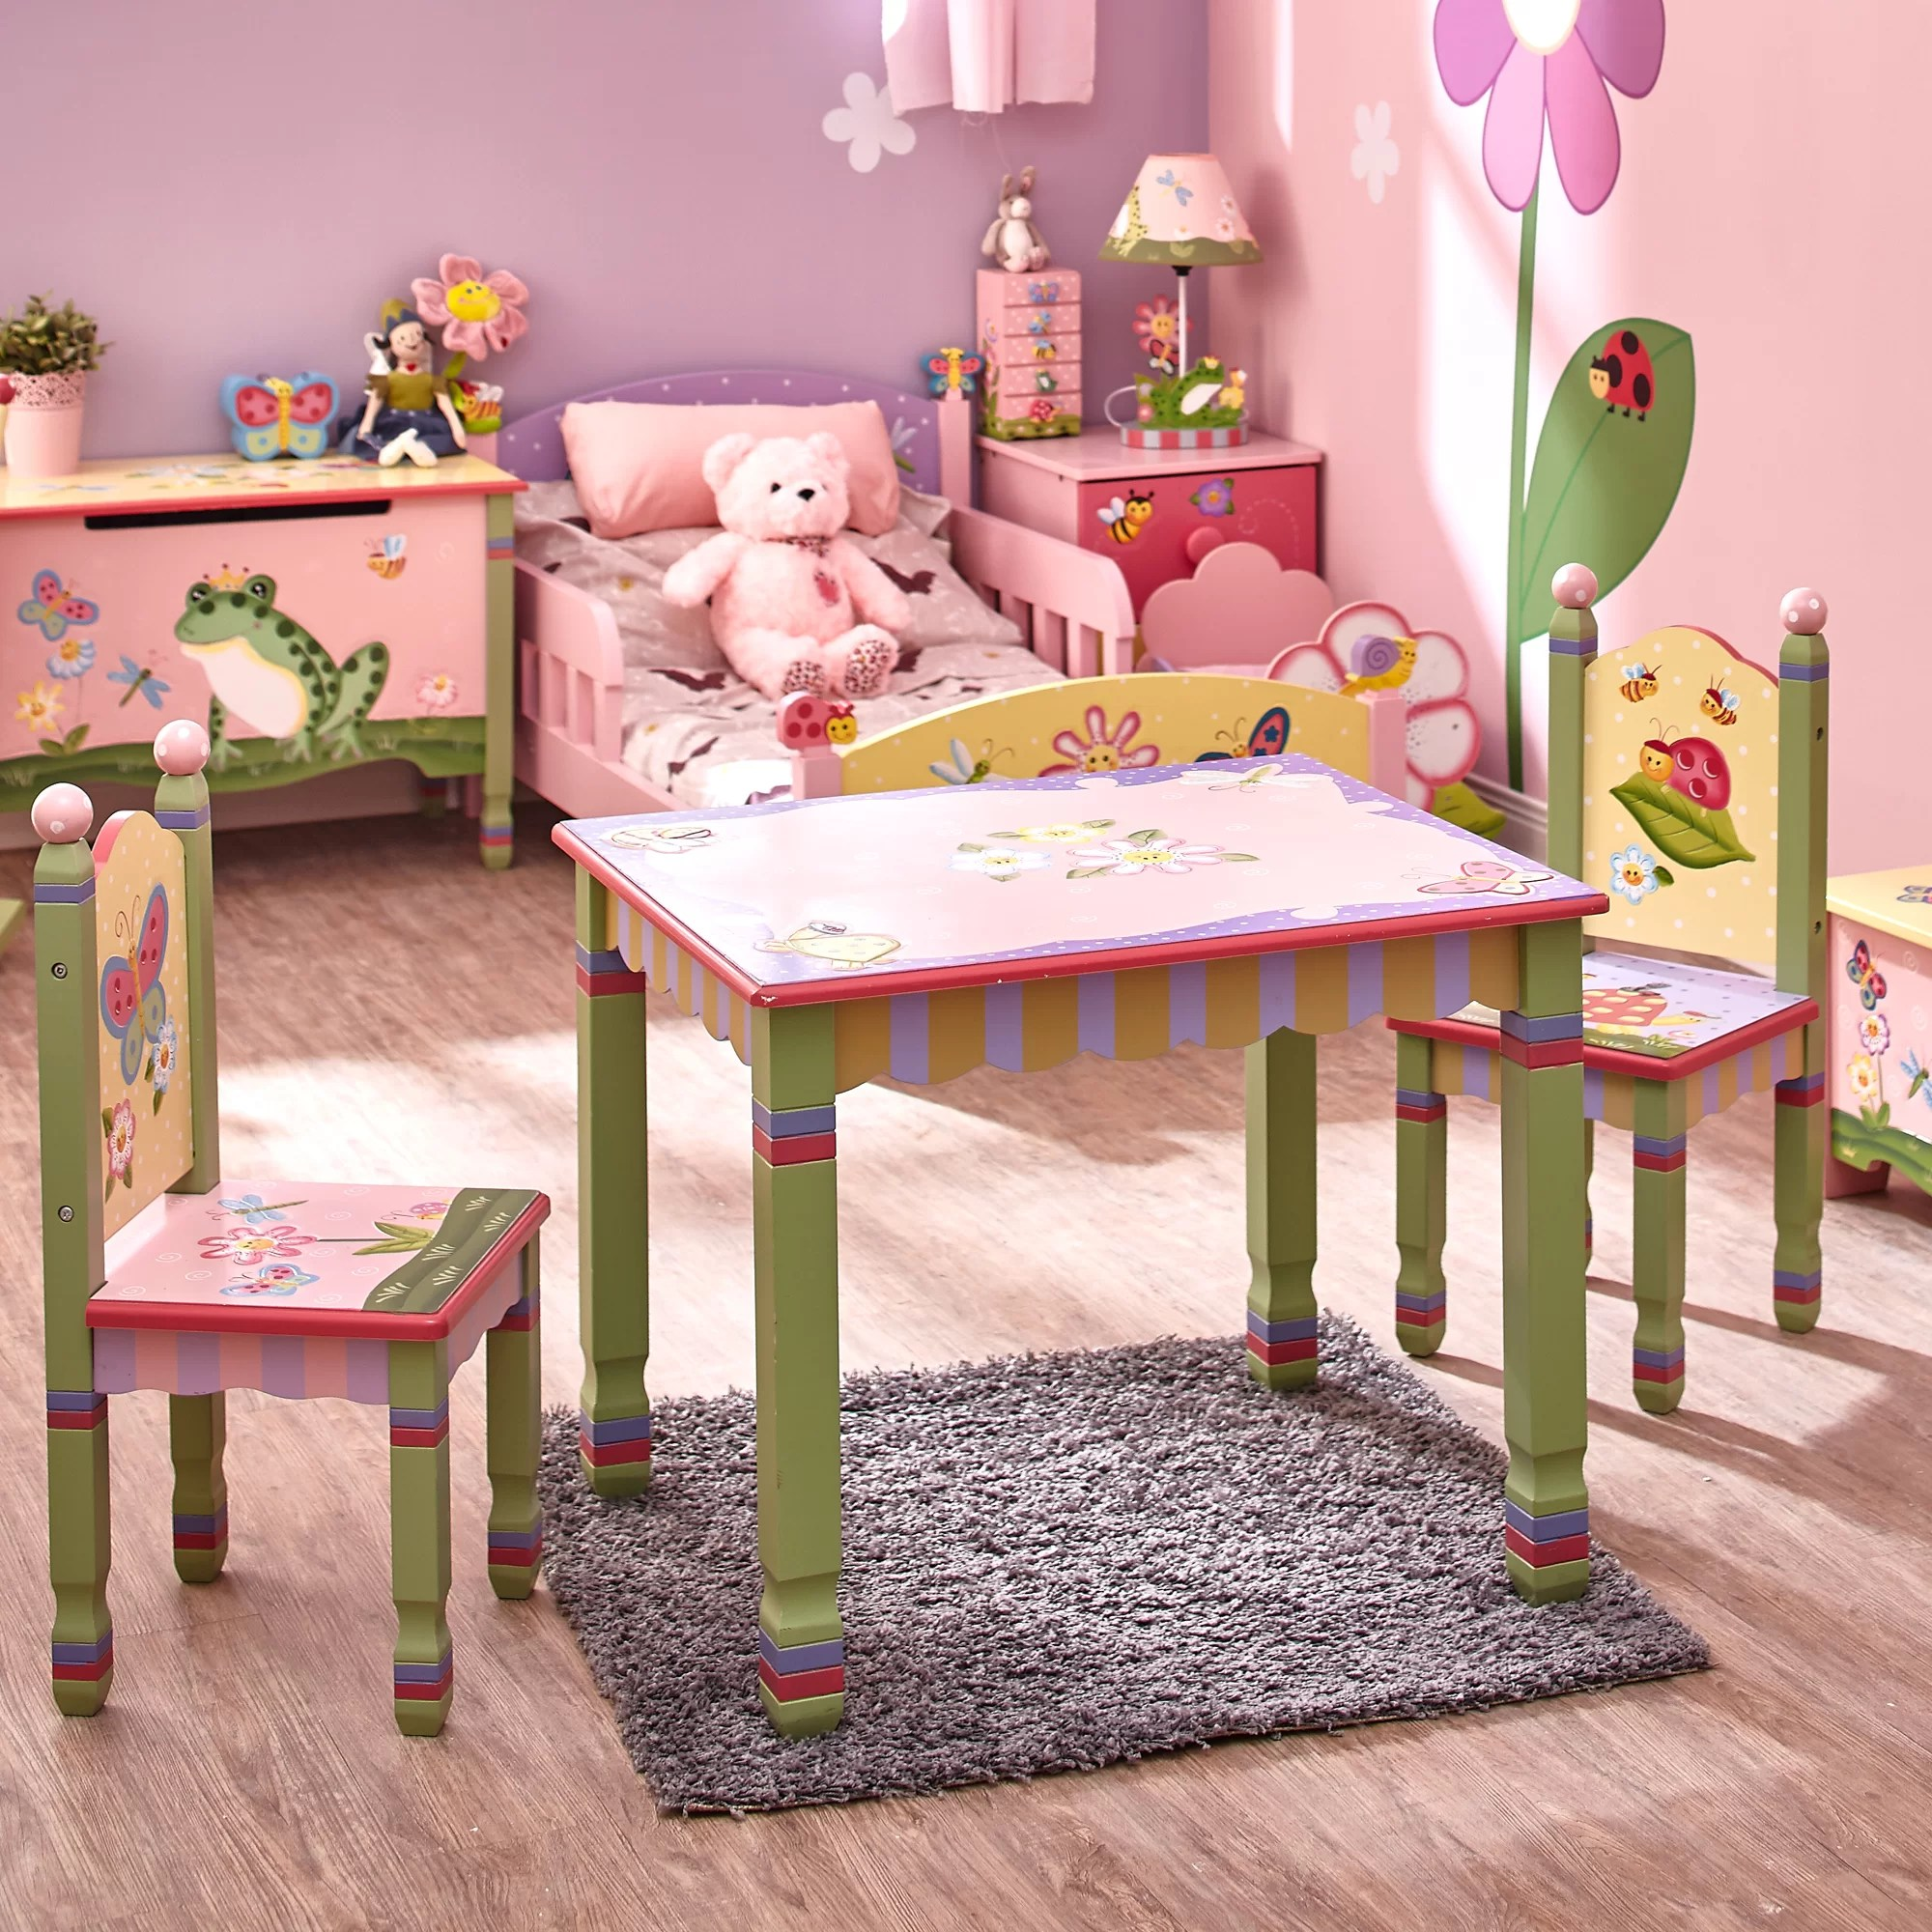 Kidkraft Heart Table And Chair Set Magic Garden Kids 3 Piece Table Chair Set